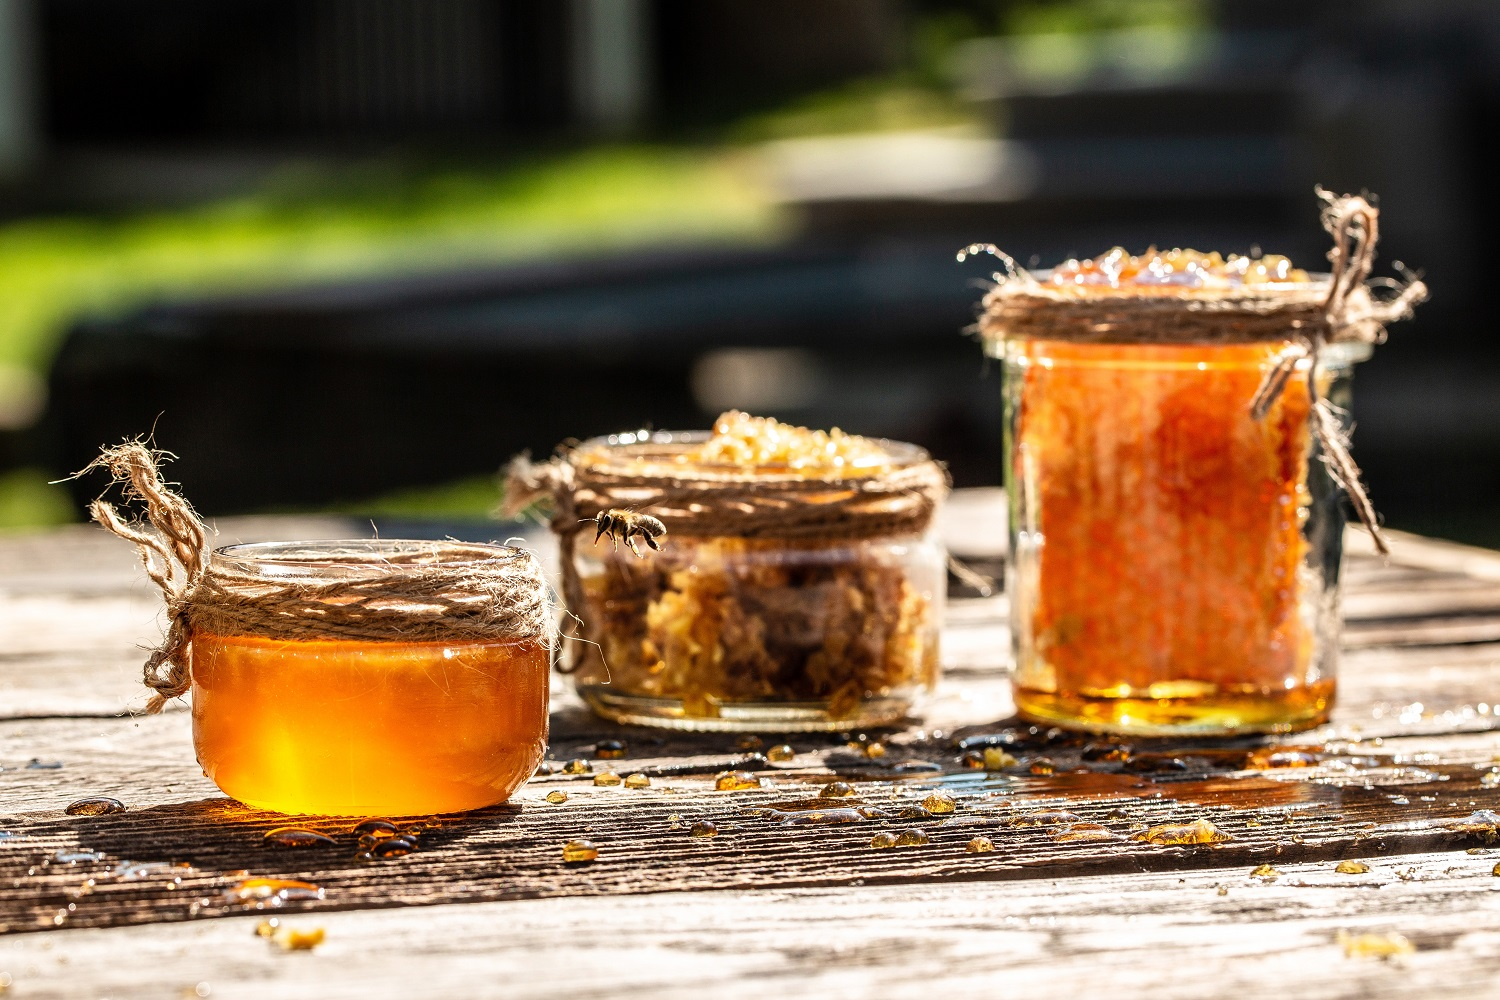 Honey in glass jar with bee flying on wooden table on background honeycombs with full cells of honey. organic natural ingredients concept. banner, menu, recipe, place for text